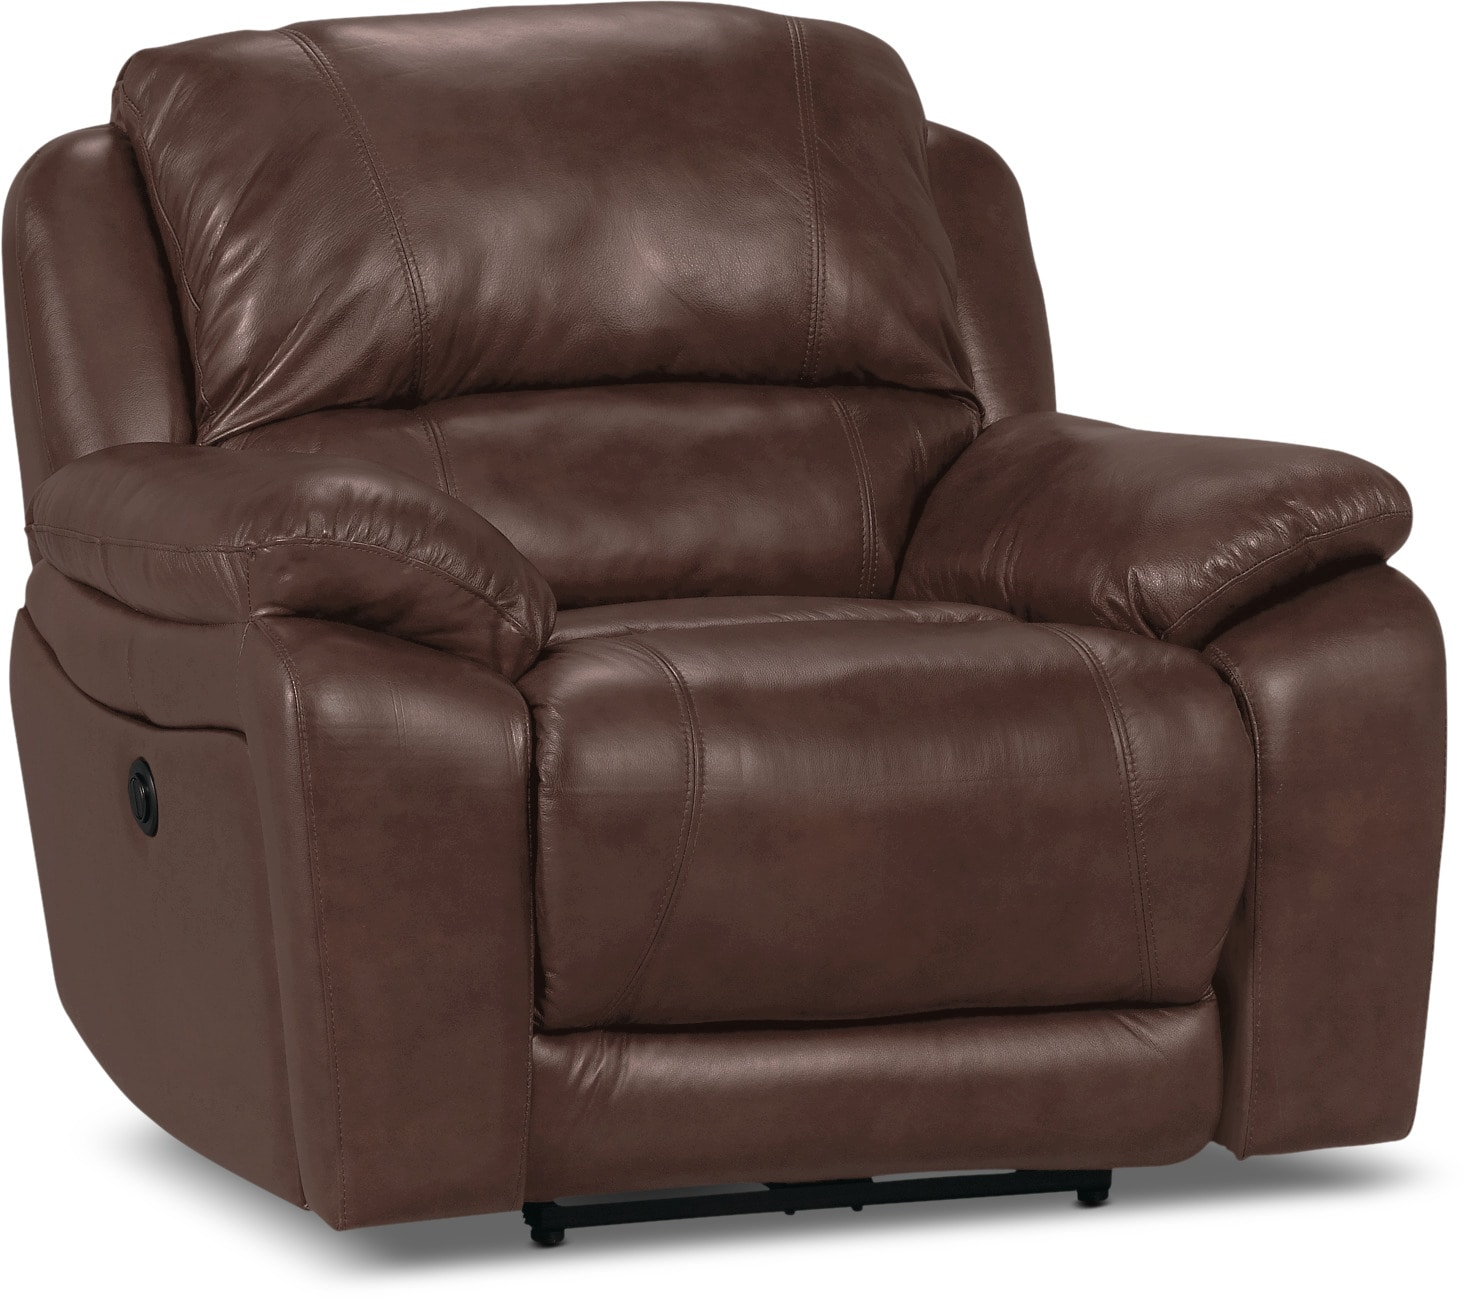 Marco Genuine Leather Power Recliner - Chocolate